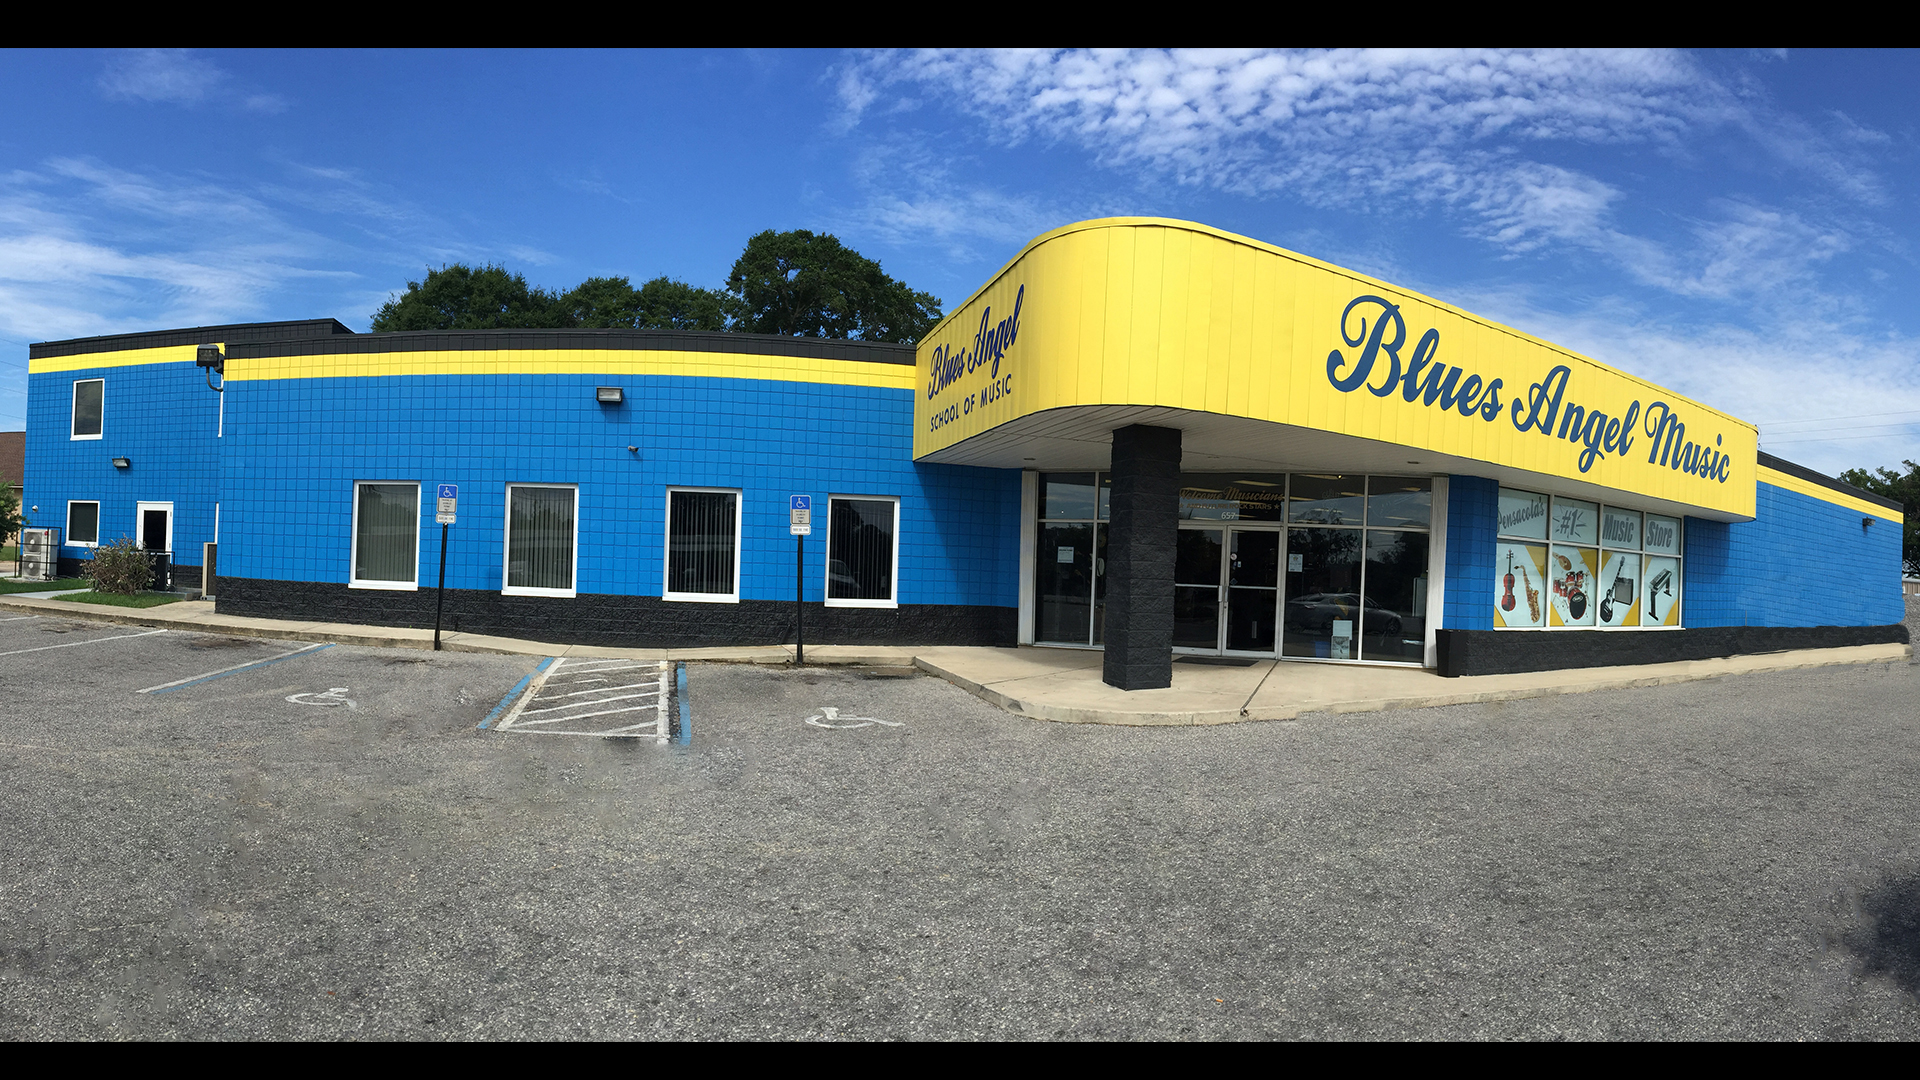 Blues Angel Music's brick-and-mortar store is located in Pensacola, FL.